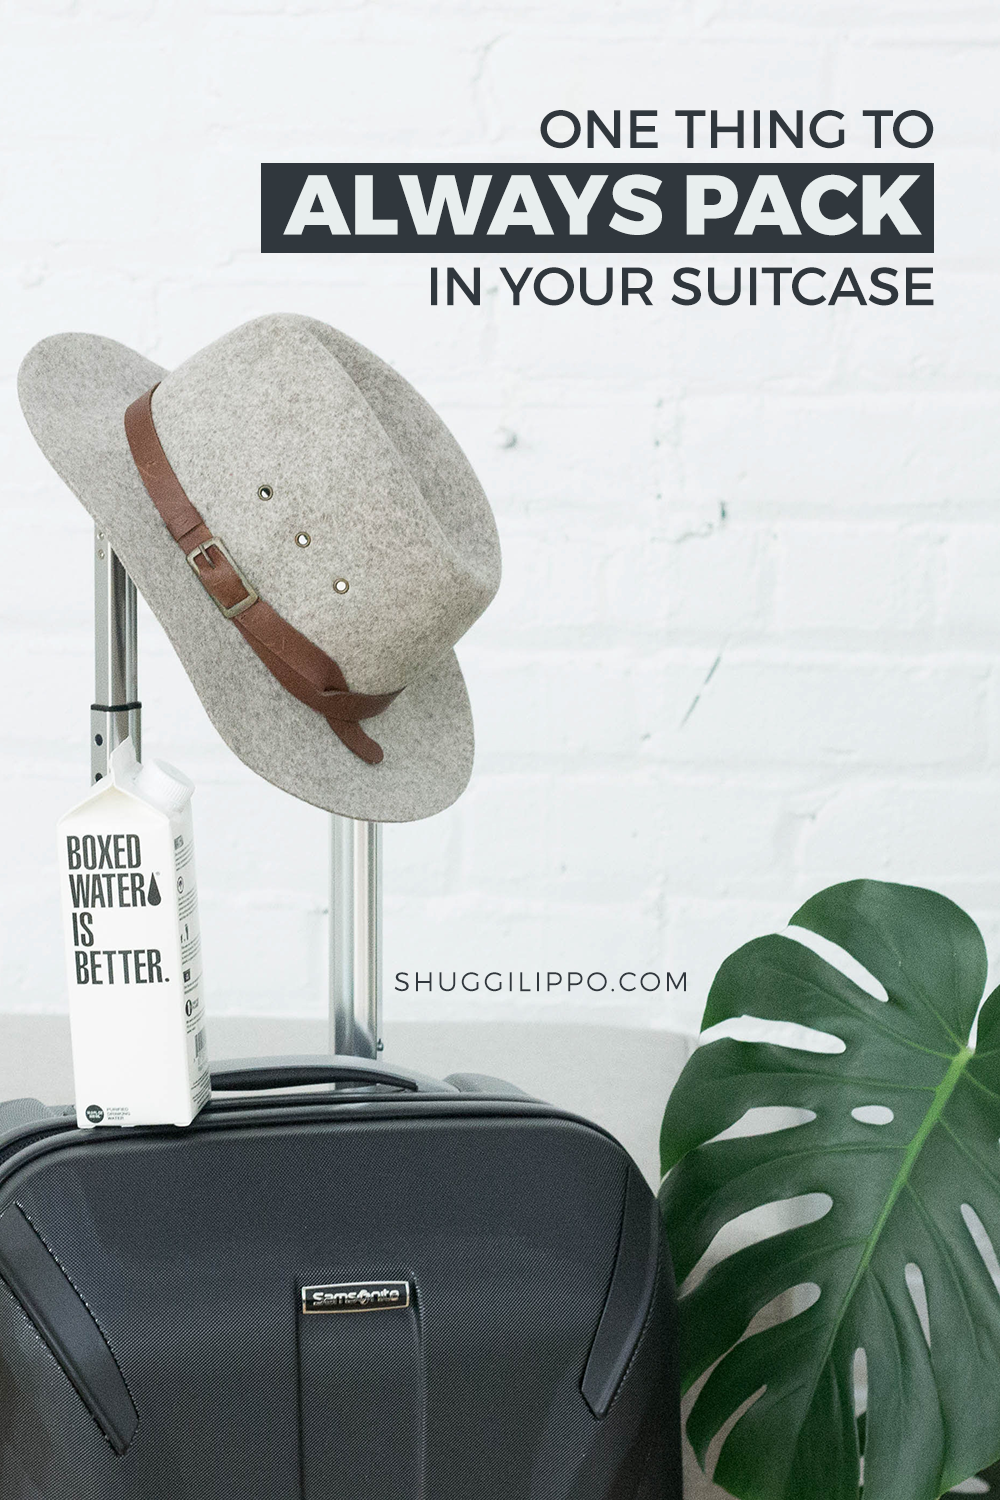 The One Thing to Always Pack in your Suitcase via SHUGGILIPPO